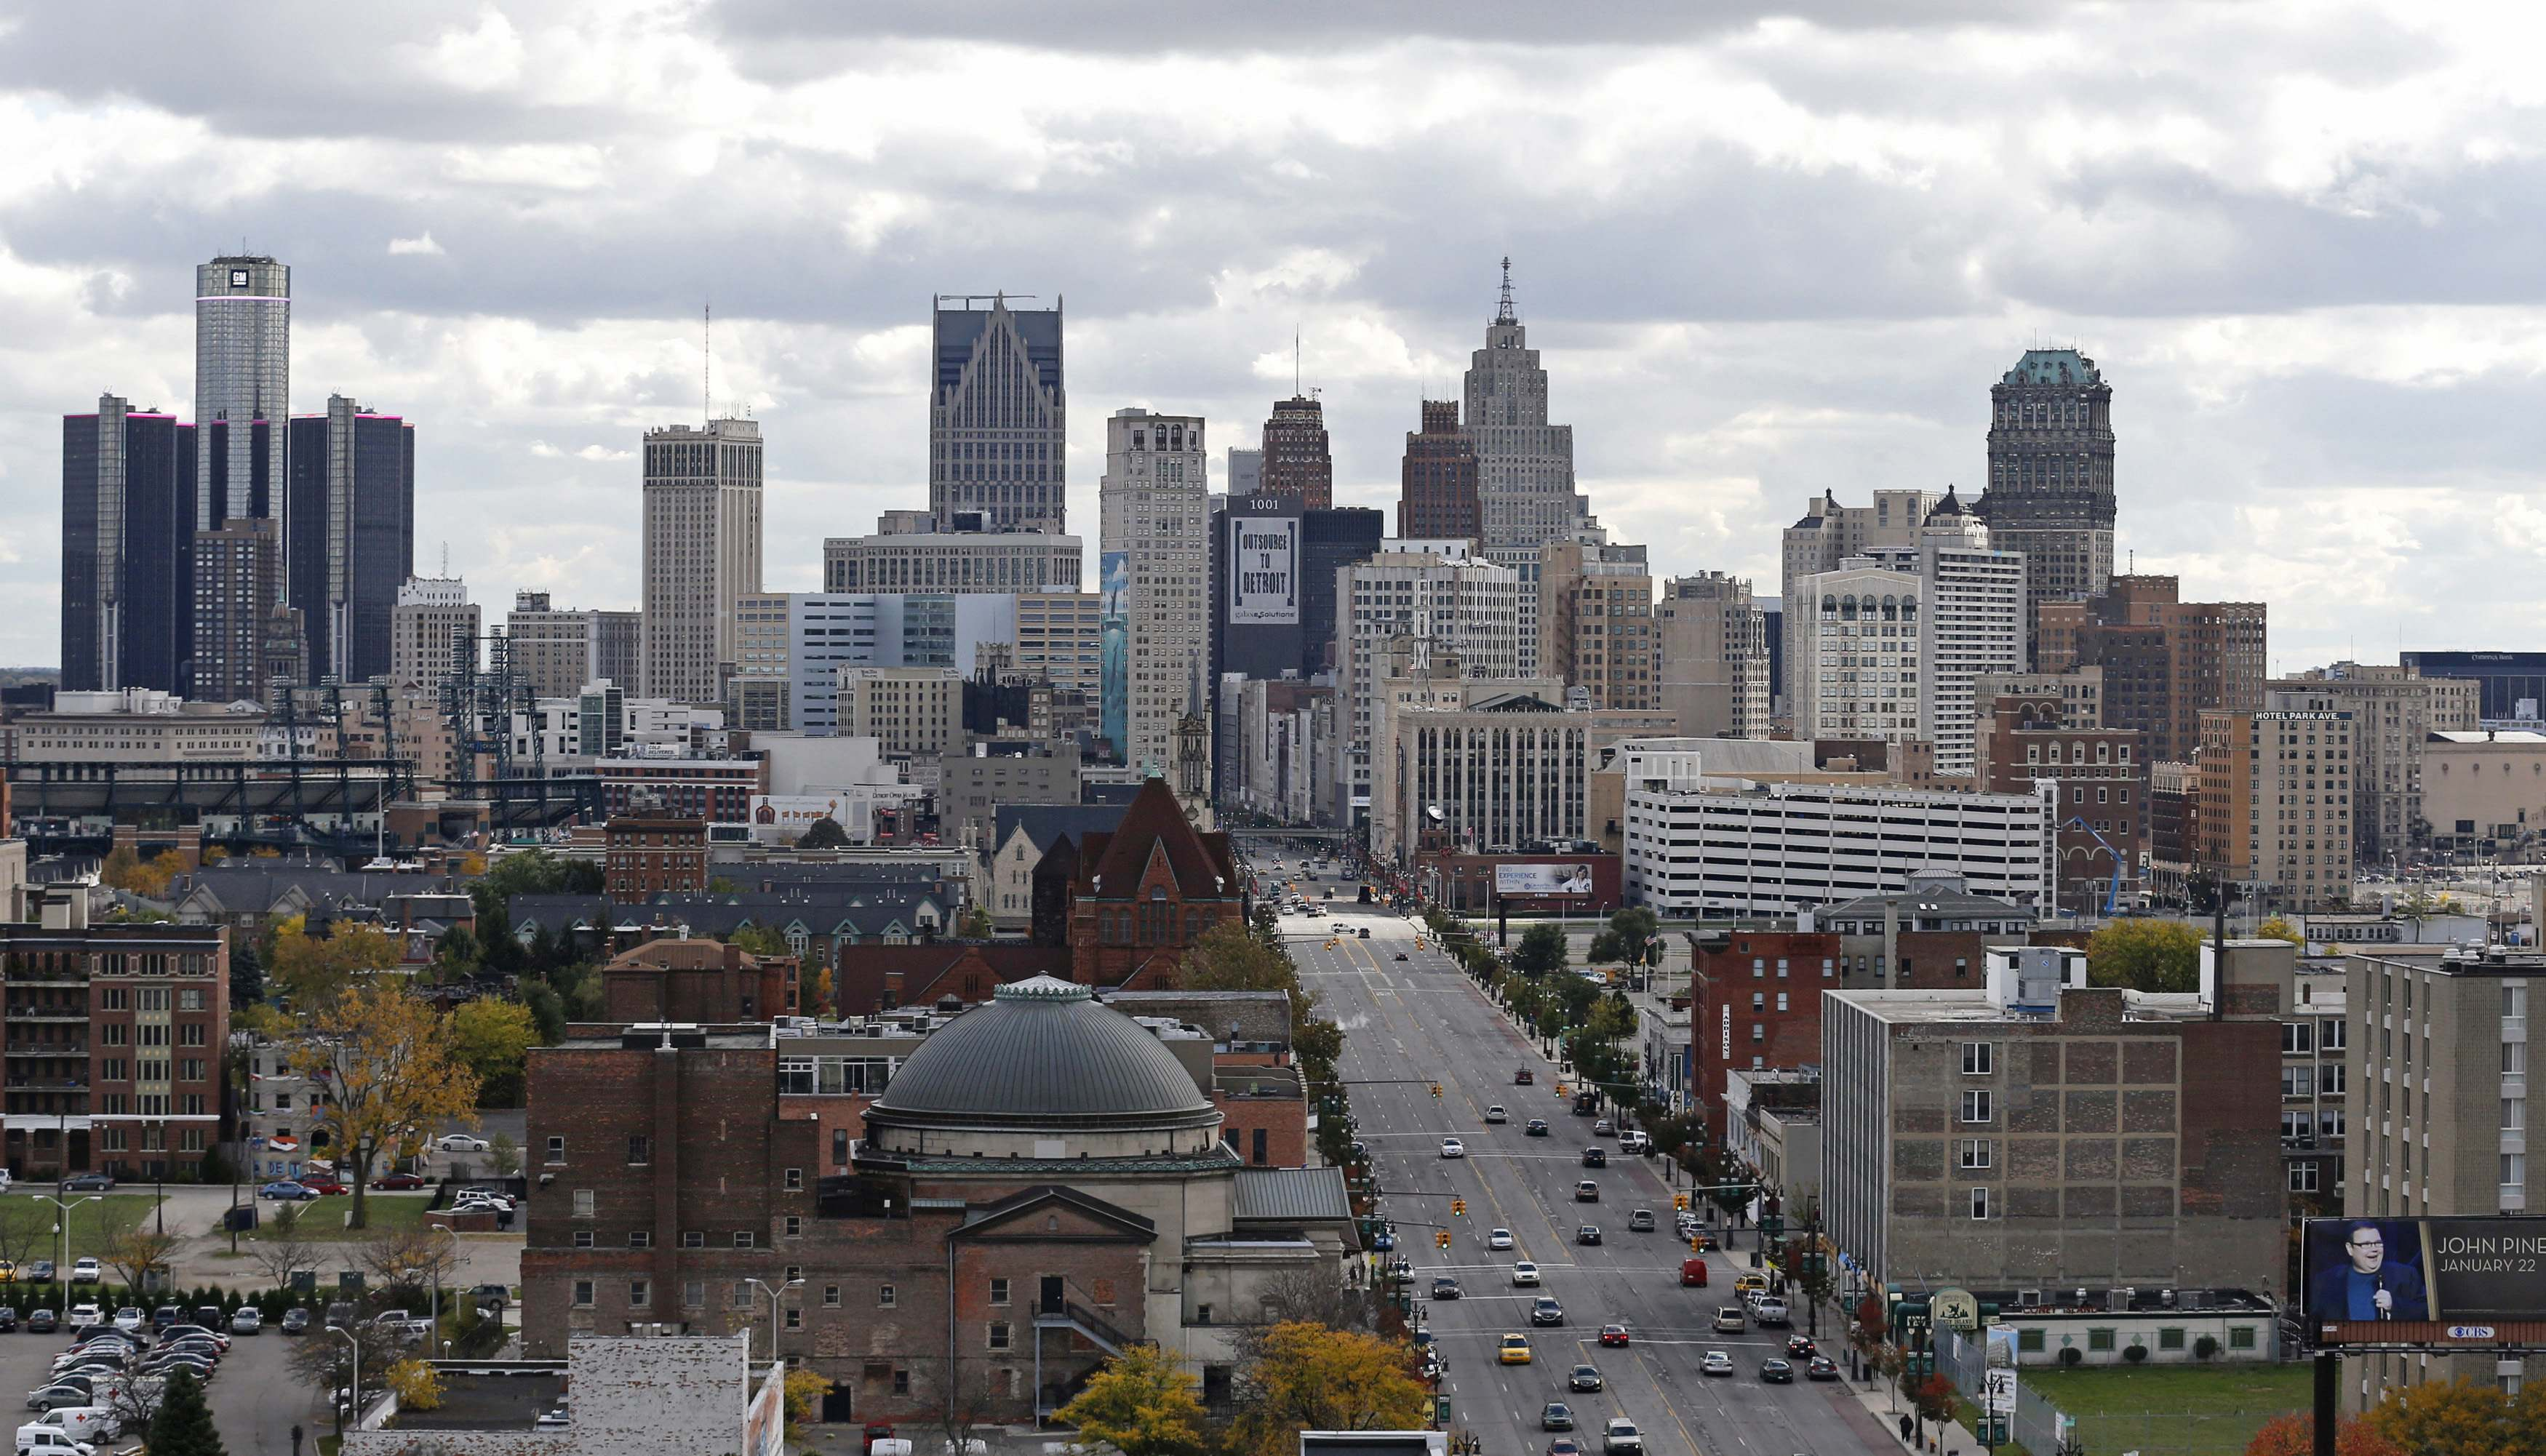 Detroit rose to No. 1 in a list of the country's top 10